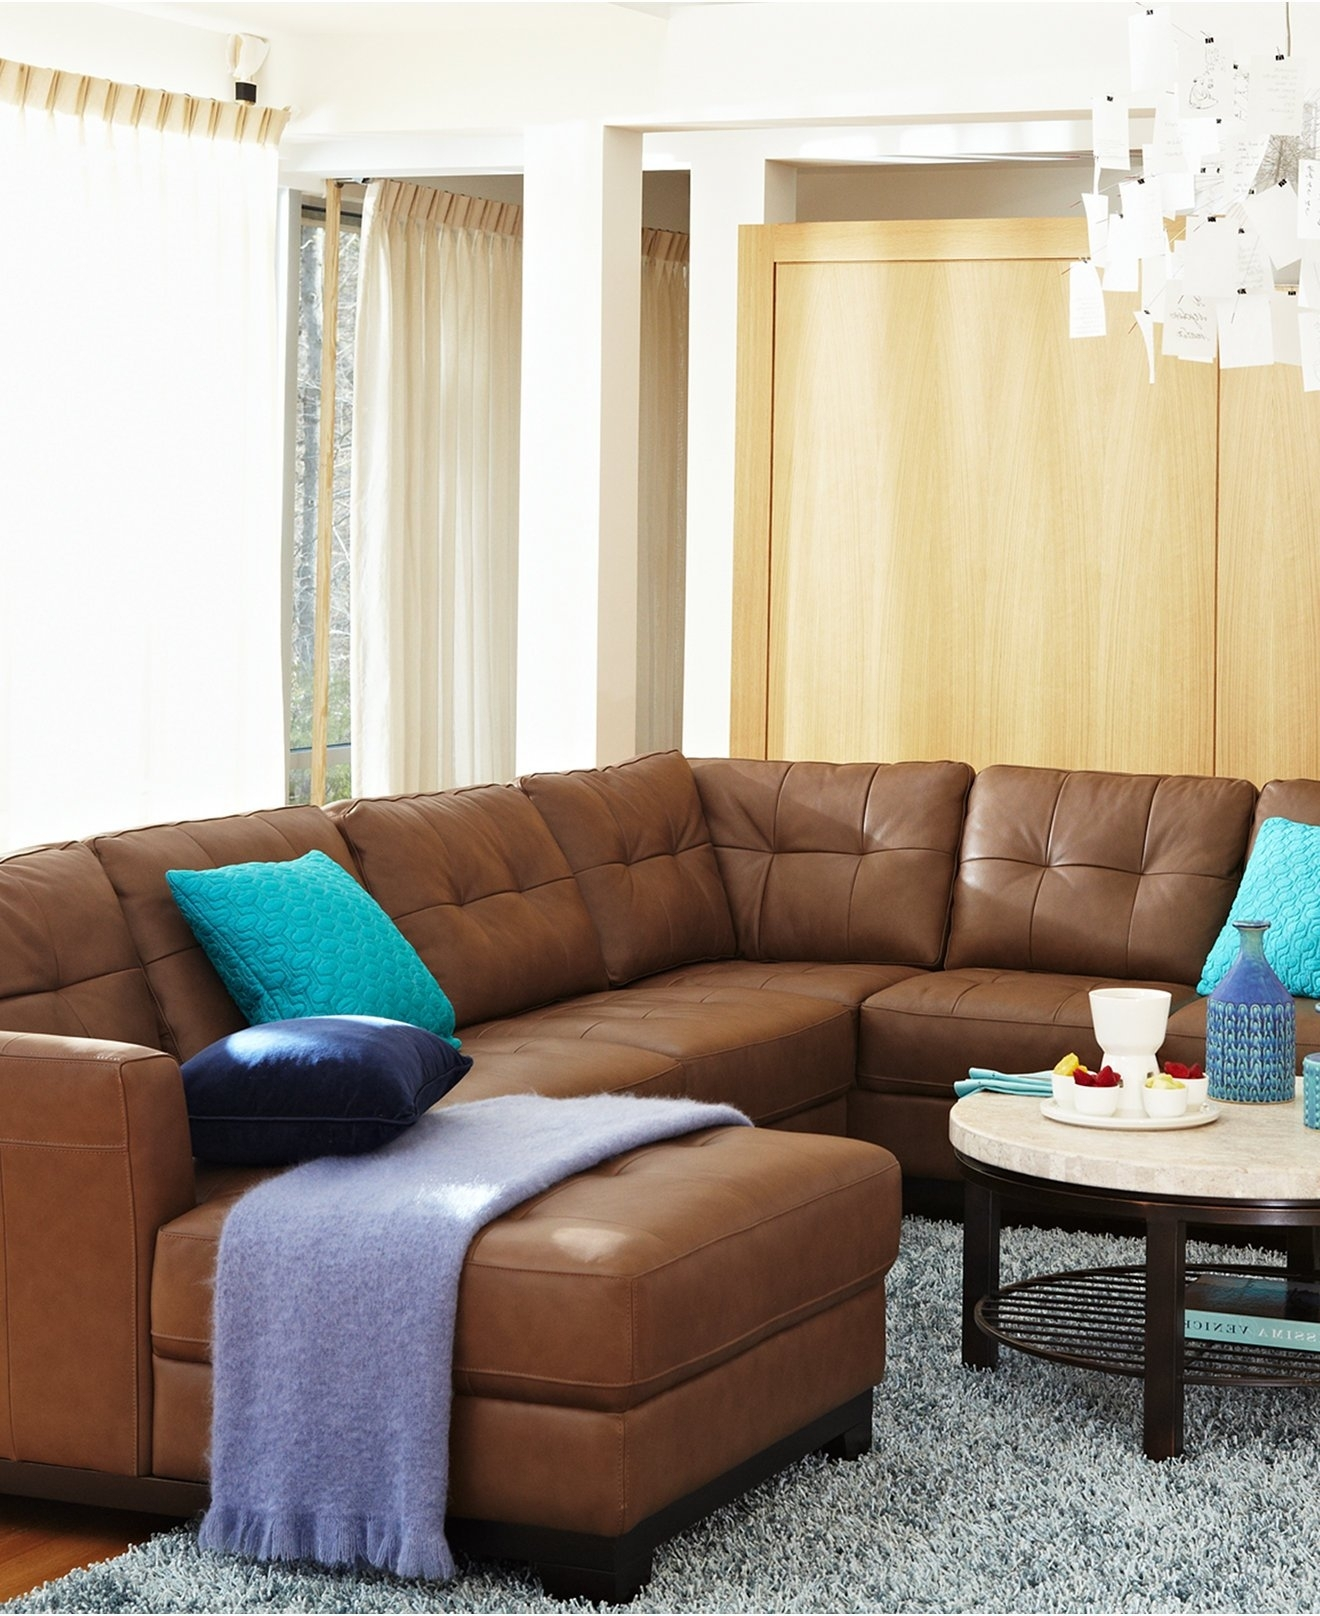 Versatile Macys Leather Sofa Sofas & Sectionals Brown Leather Sofa For Macys Leather Sectional Sofas (Image 9 of 10)